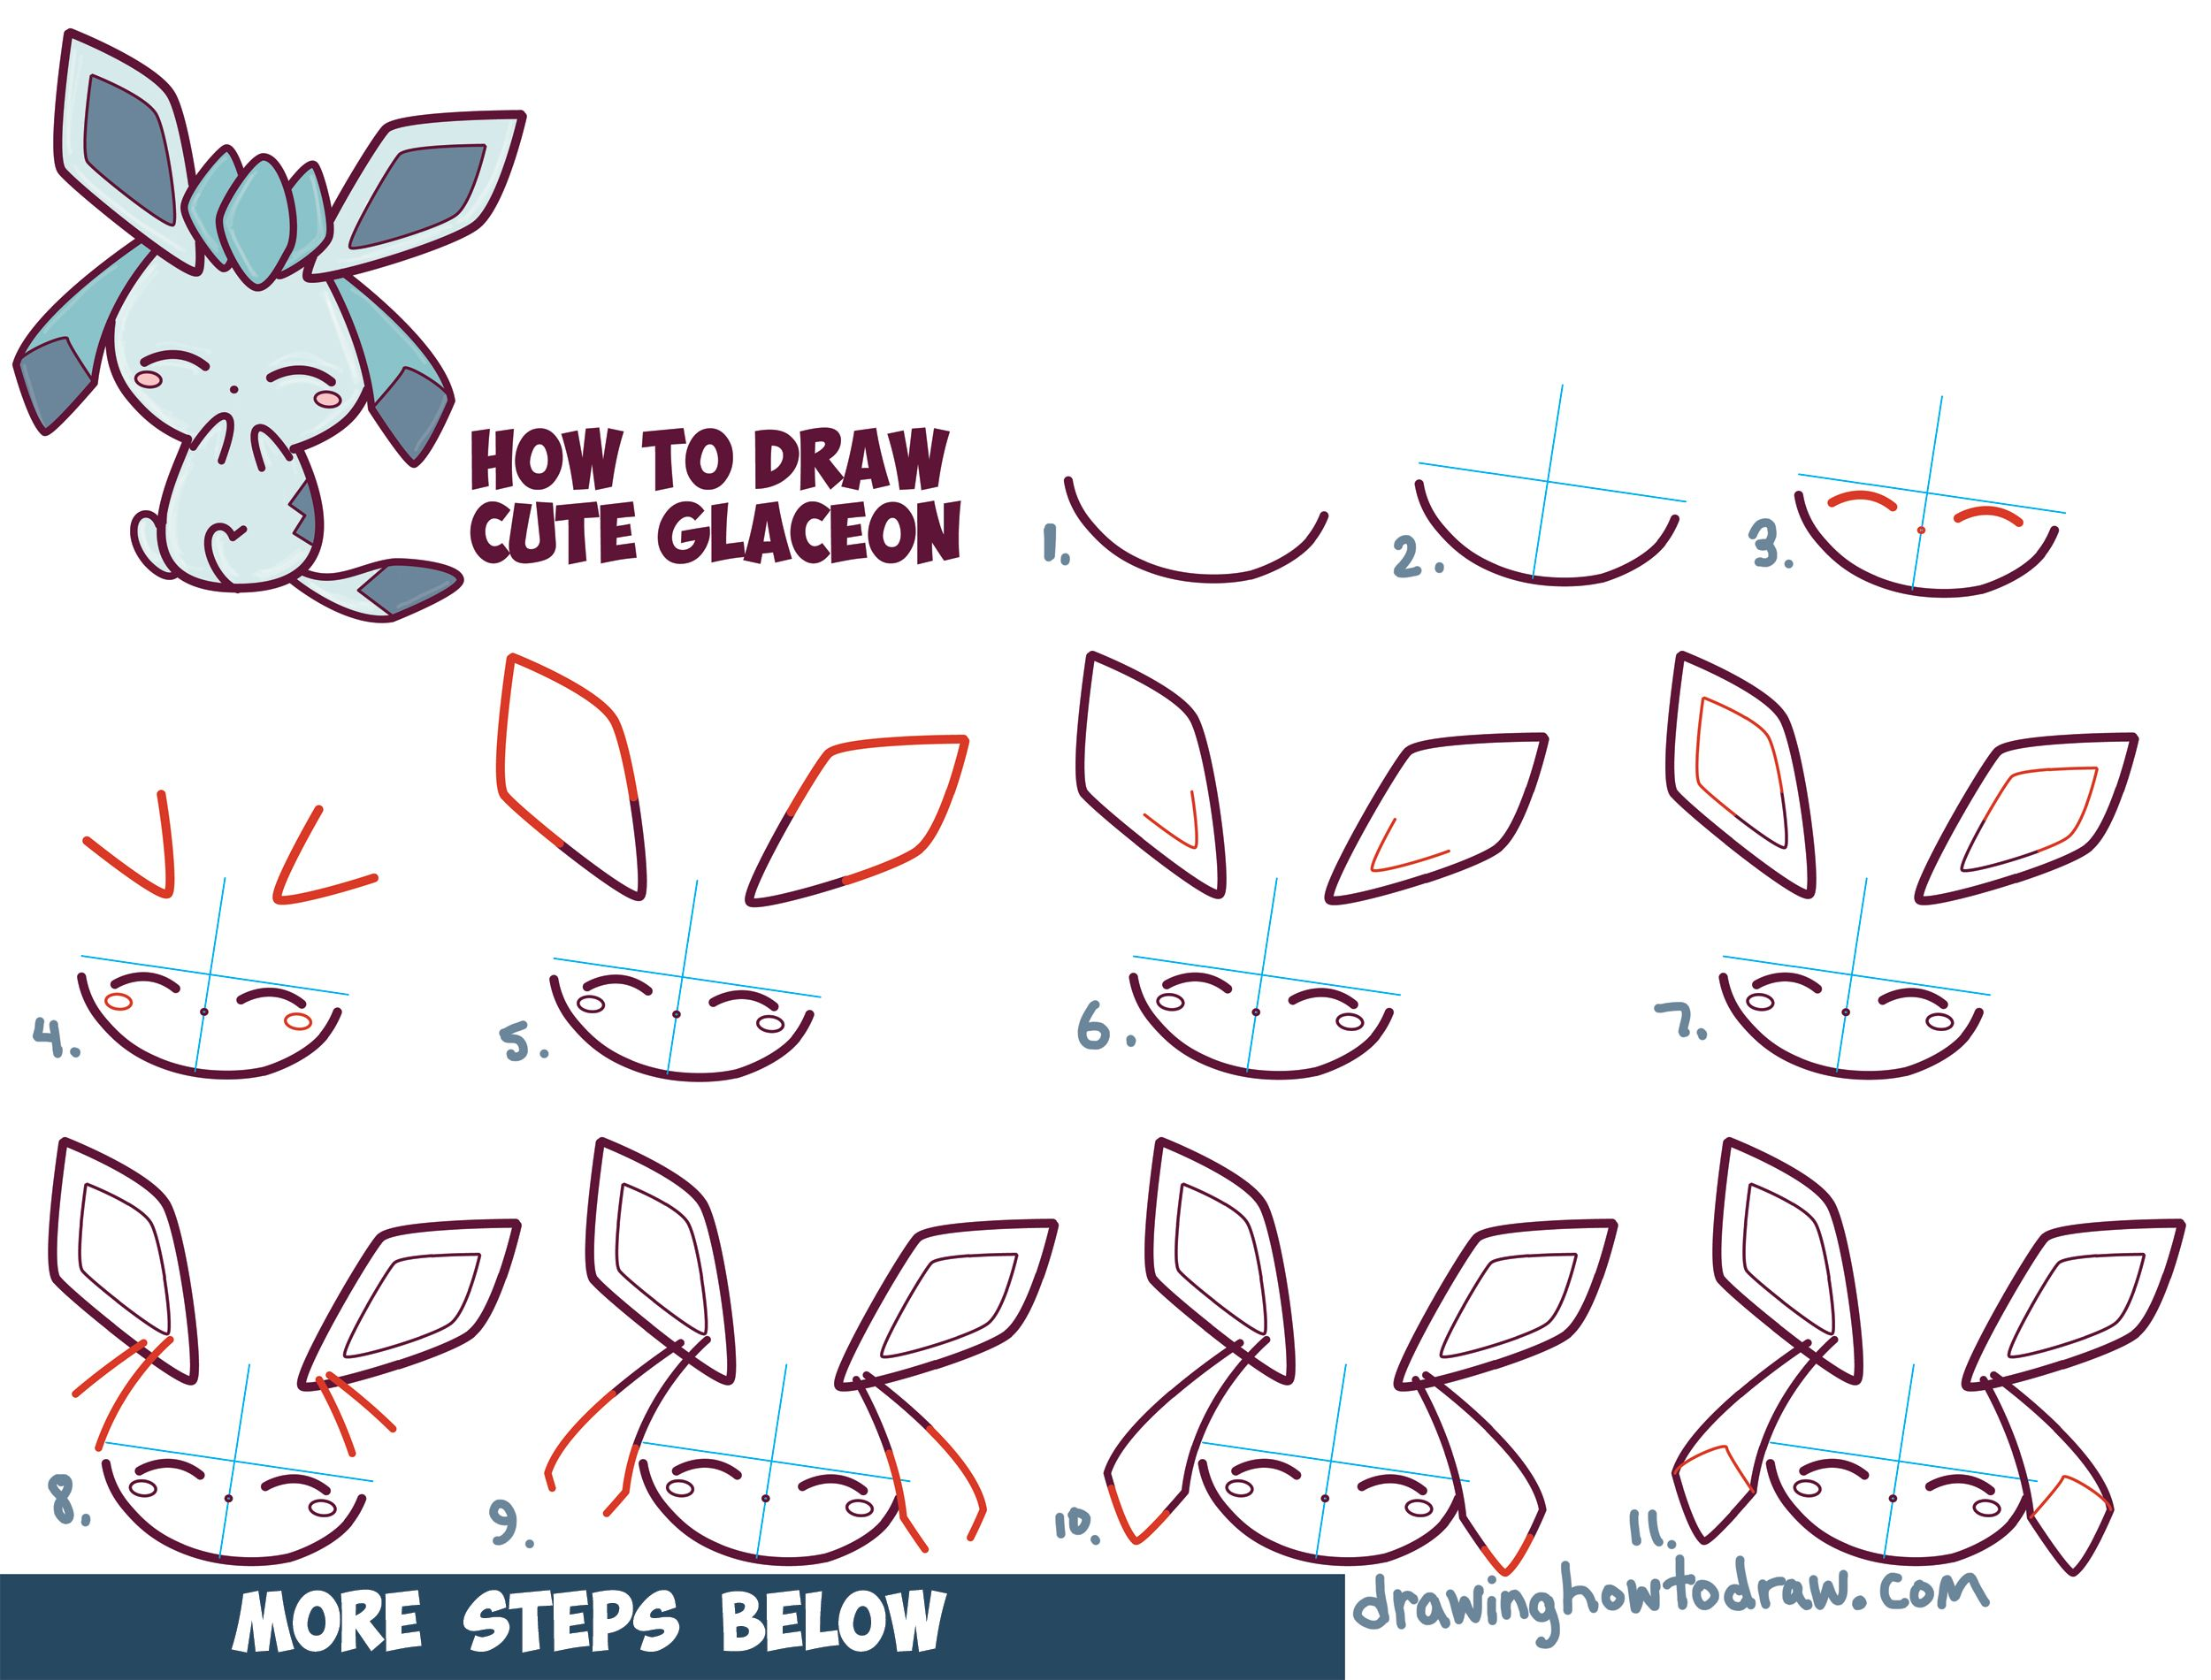 How To Draw Cute Kawaii Chibi Glaceon From Pokemon In Easy Step By Step  Drawing Tutorial